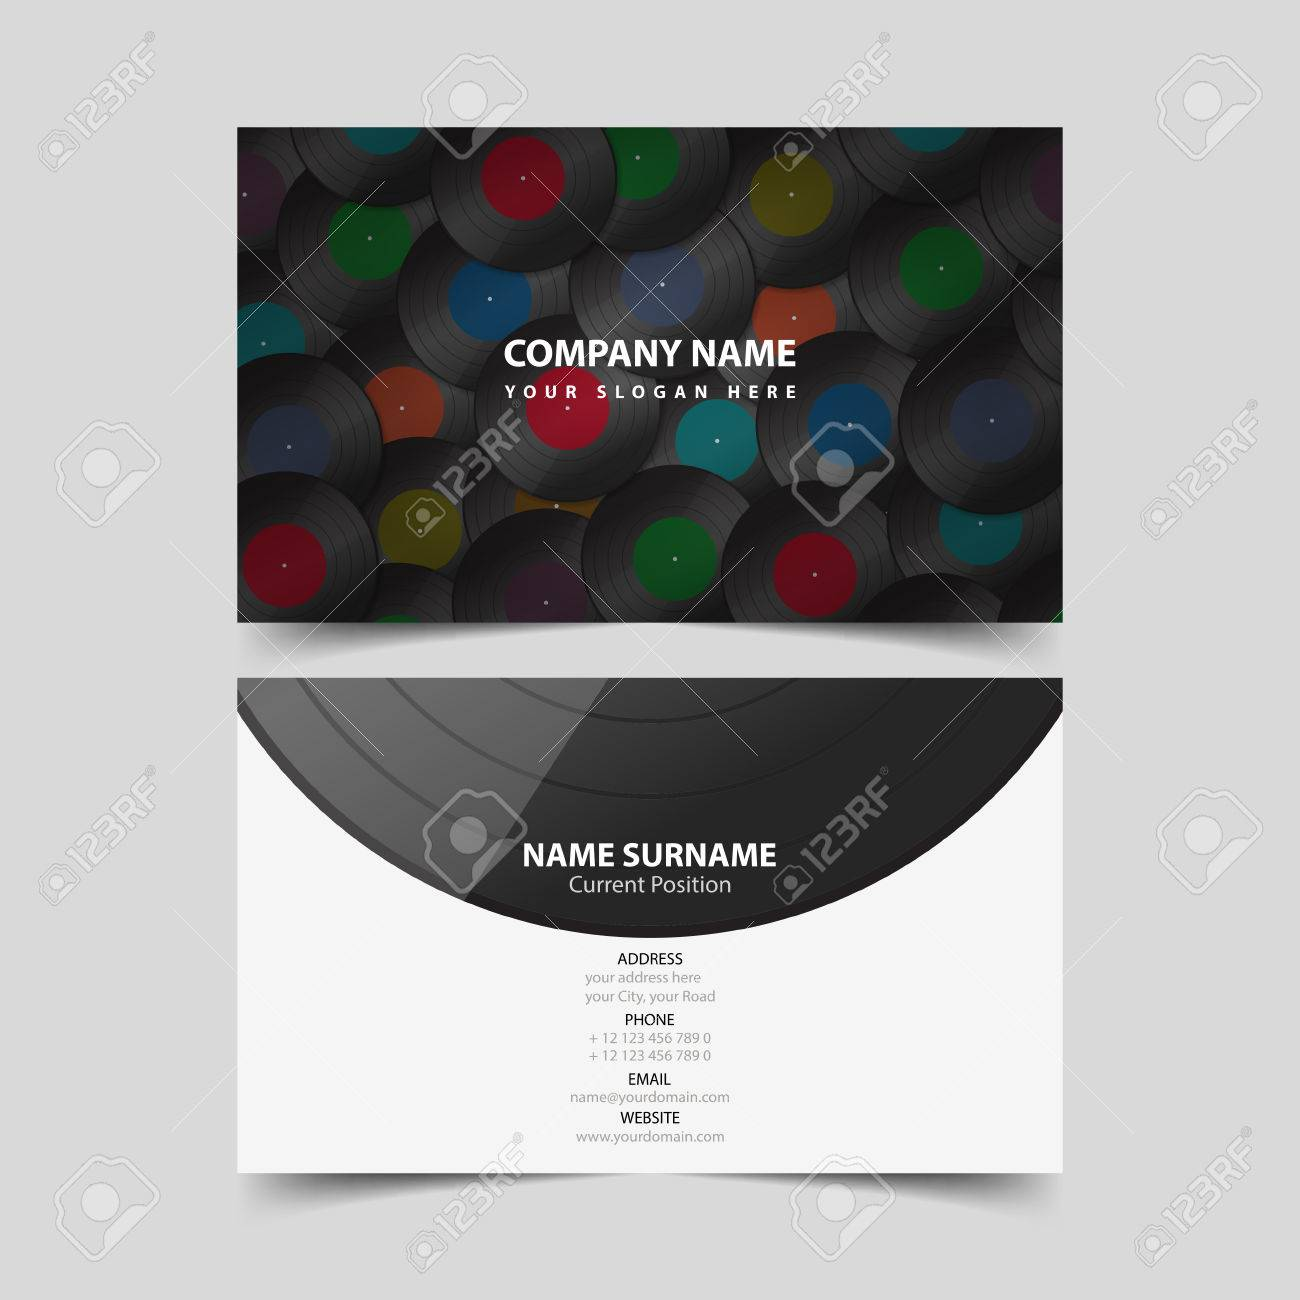 Vinyl Record Business Card Design Template. Royalty Free Cliparts ...